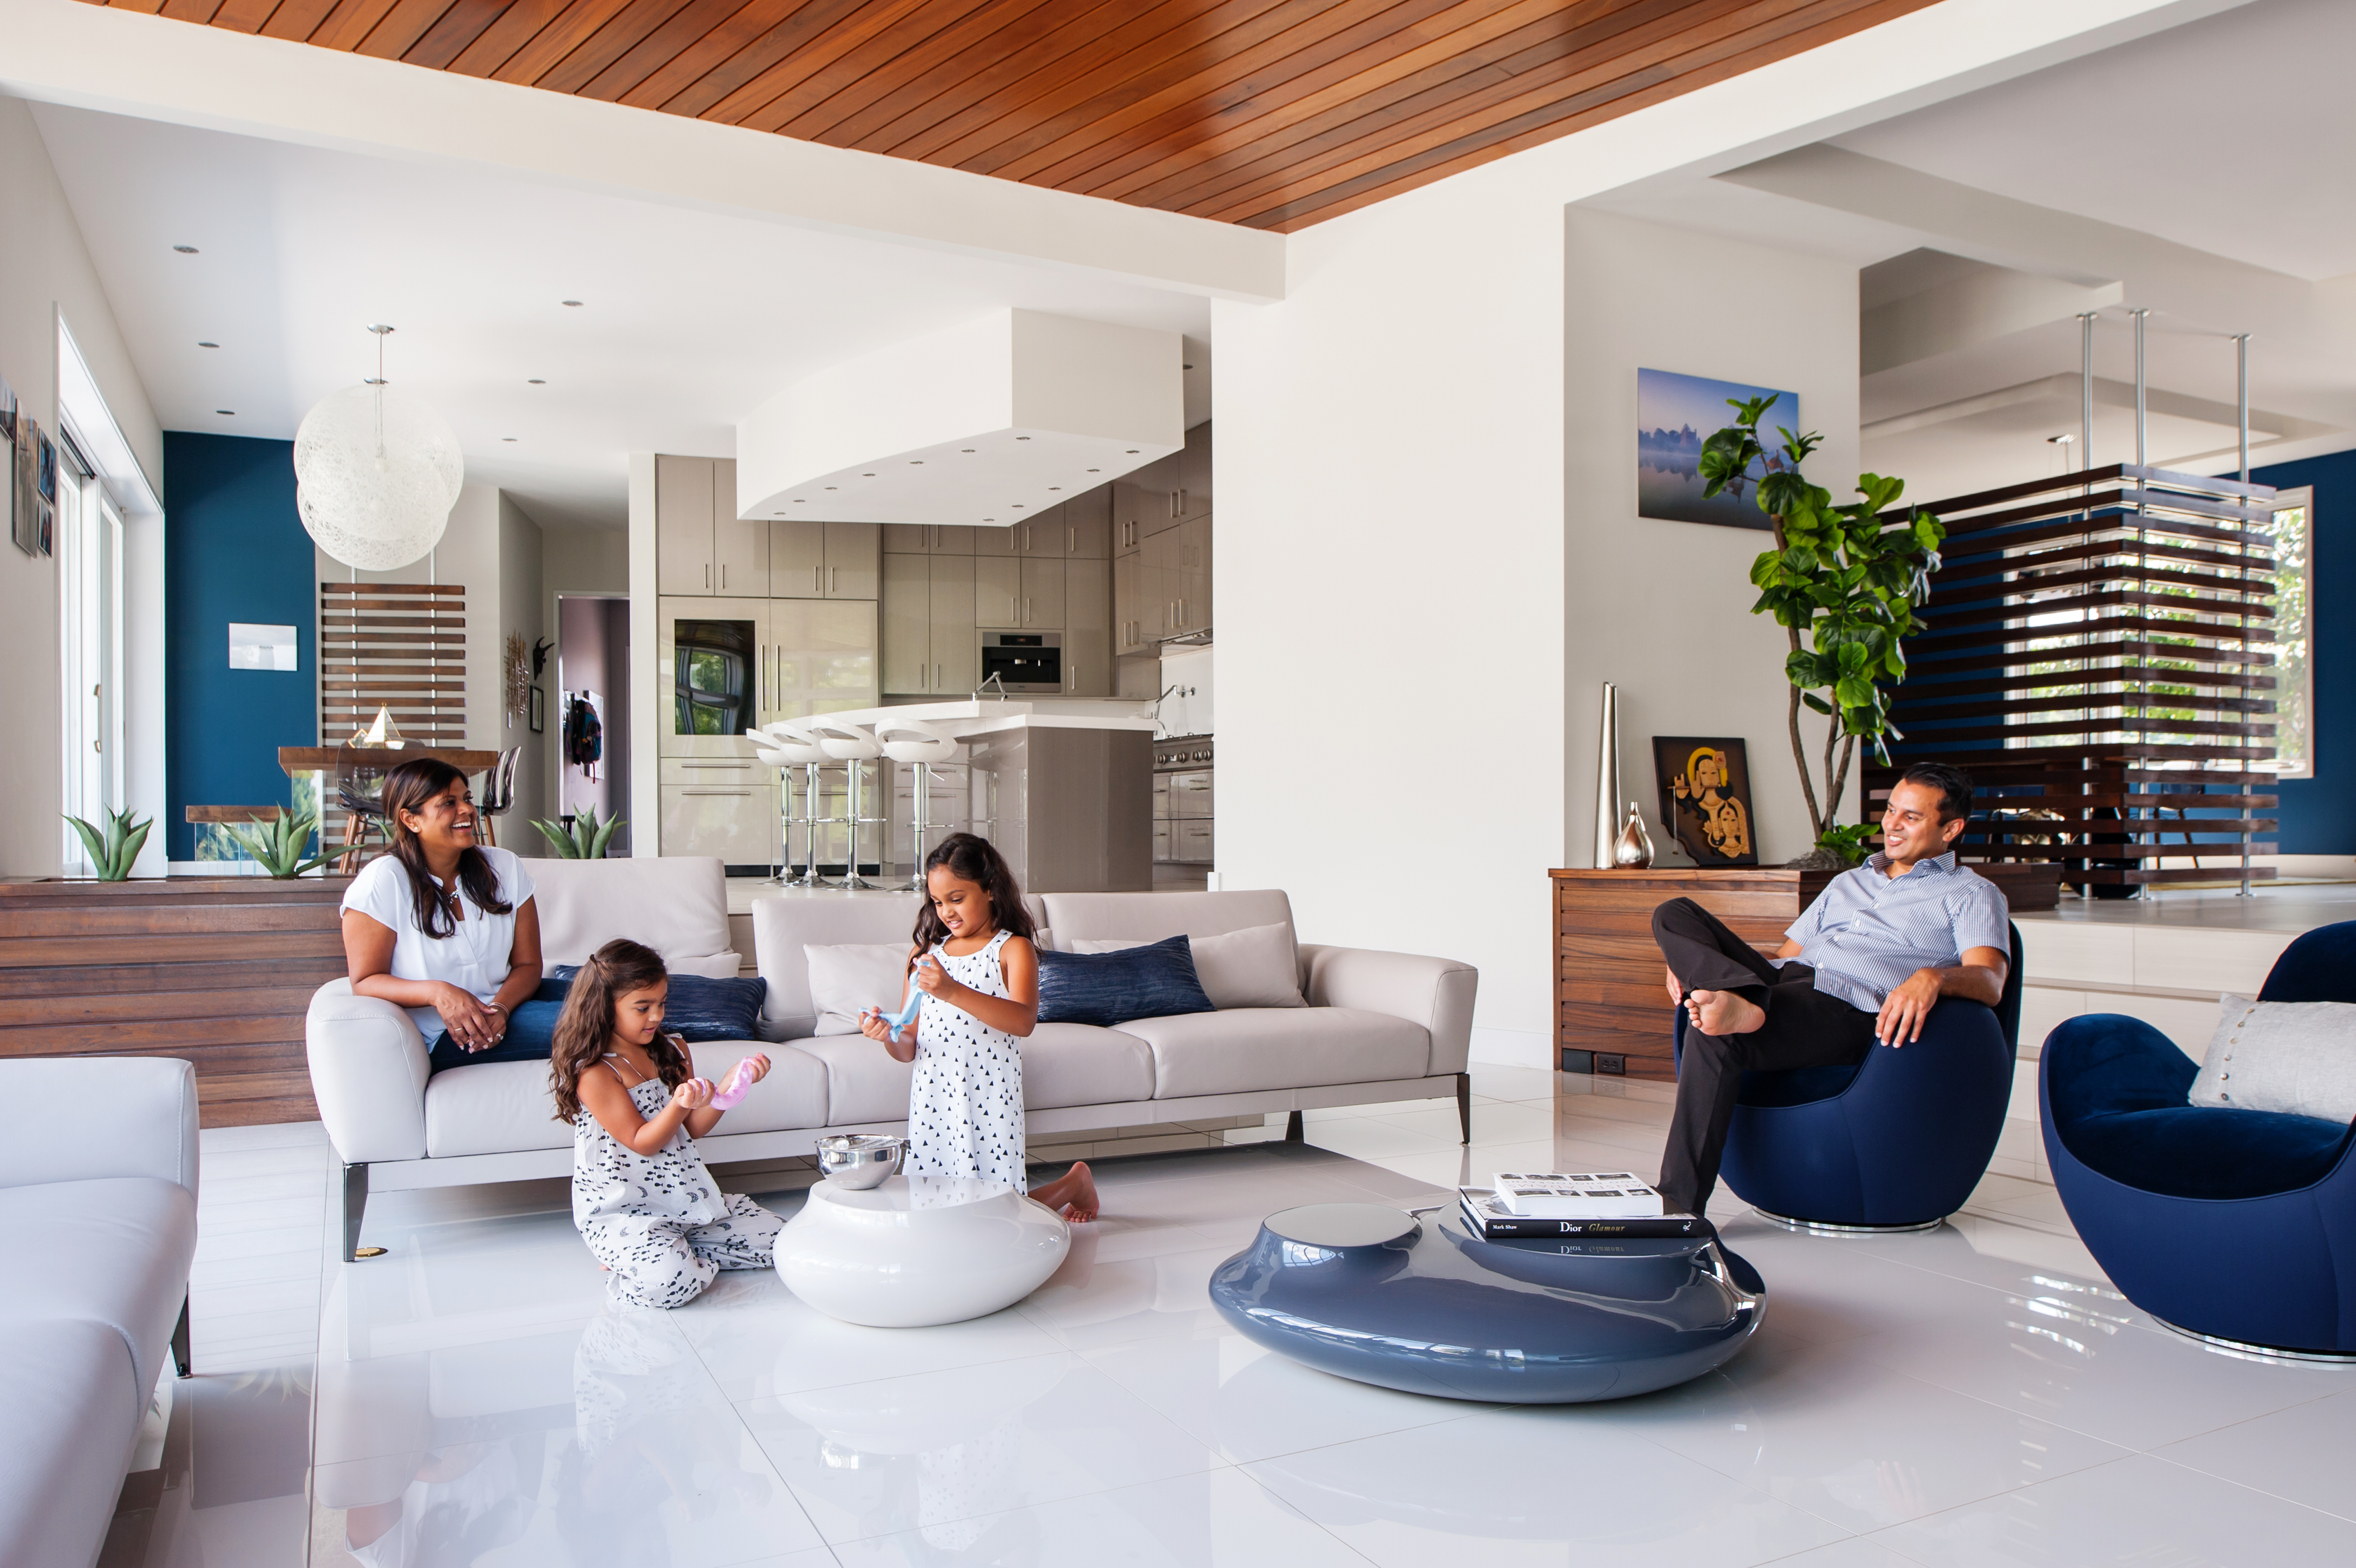 Neema and Mitesh Amin, with daughters Kirin and Riya, relax in their contemporary home in Chester, Virginia. Photo by Ansel Olson (B.F.A.'96/A: M.F.A.'02/A)